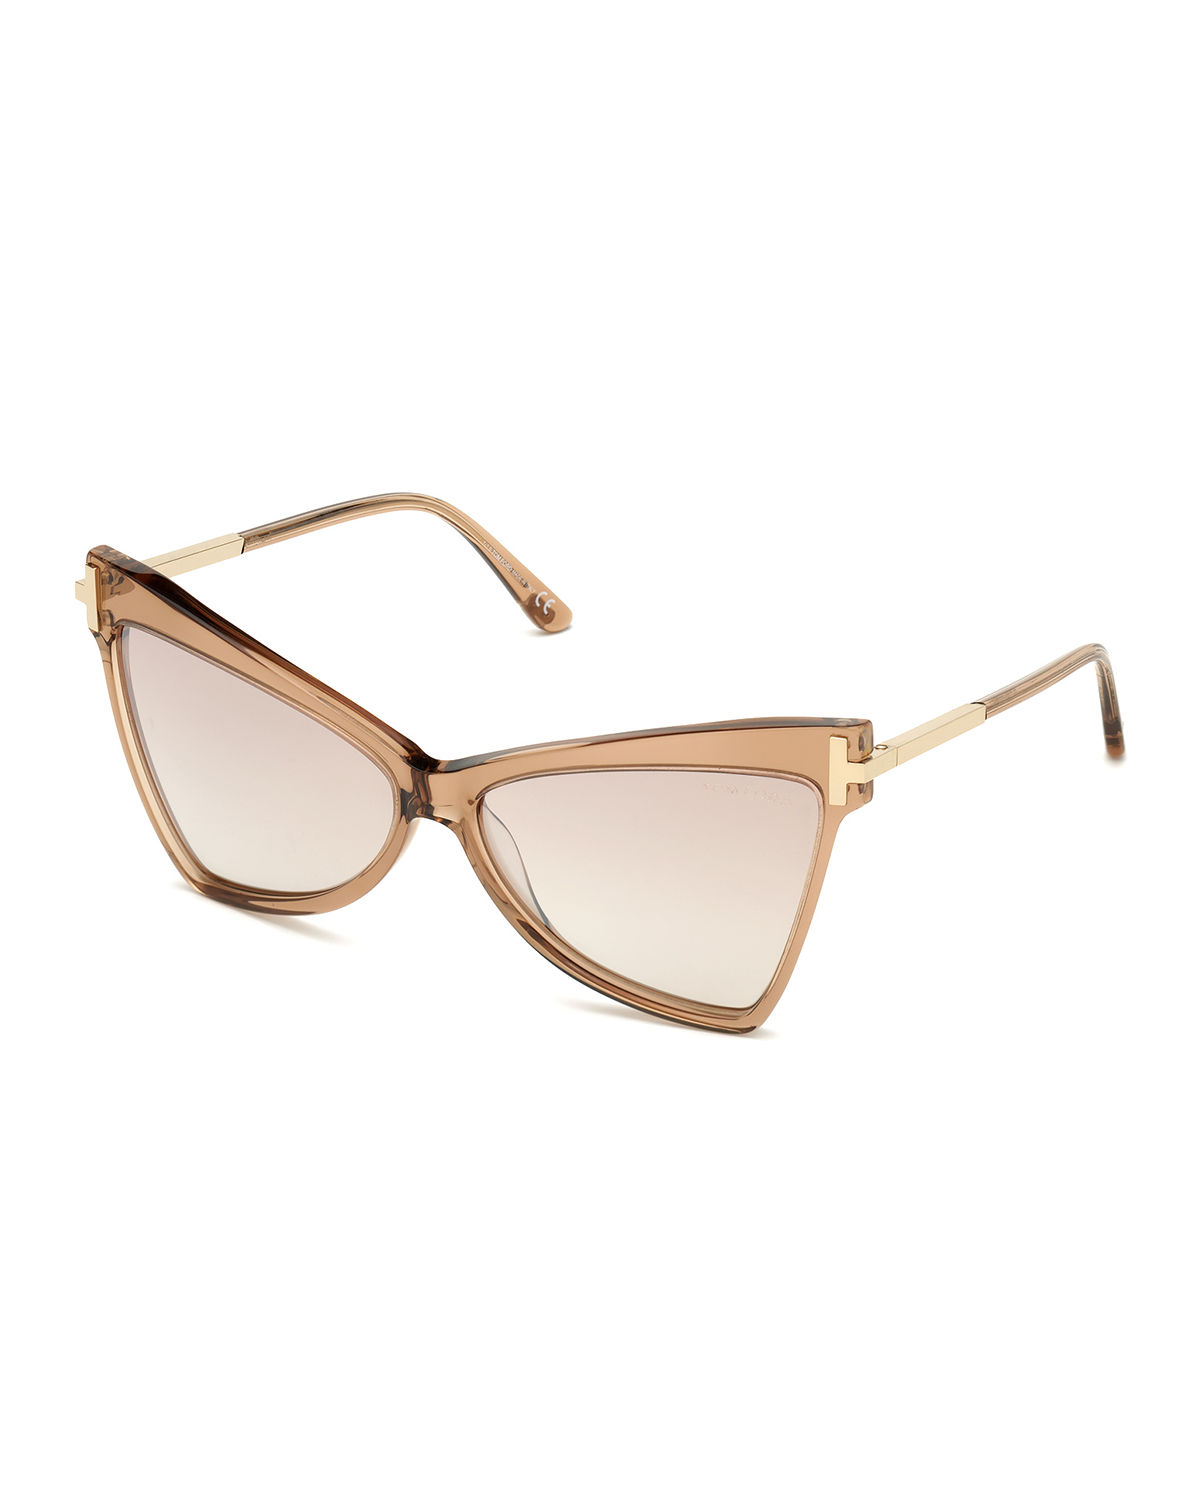 Tom Ford Tallulah Acetate Butterfly Sunglasses W/ Oversized T Temples In Beige